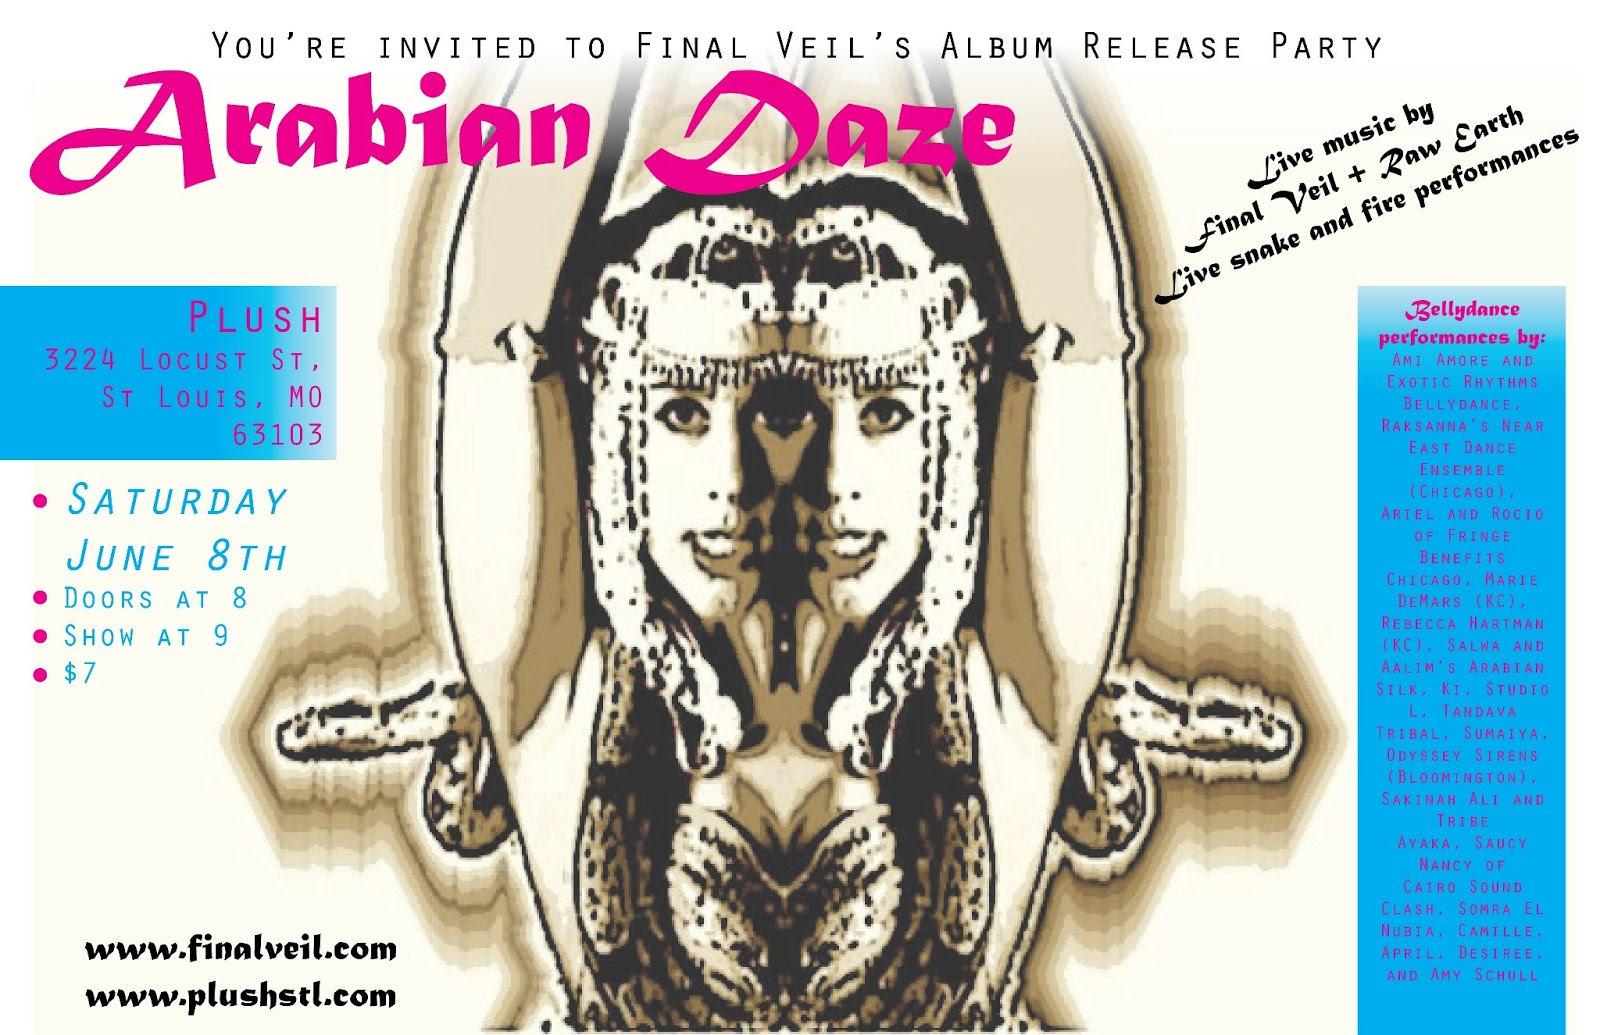 2cd0b8c92 Last week I shared with you some media on Final Veil's debut of